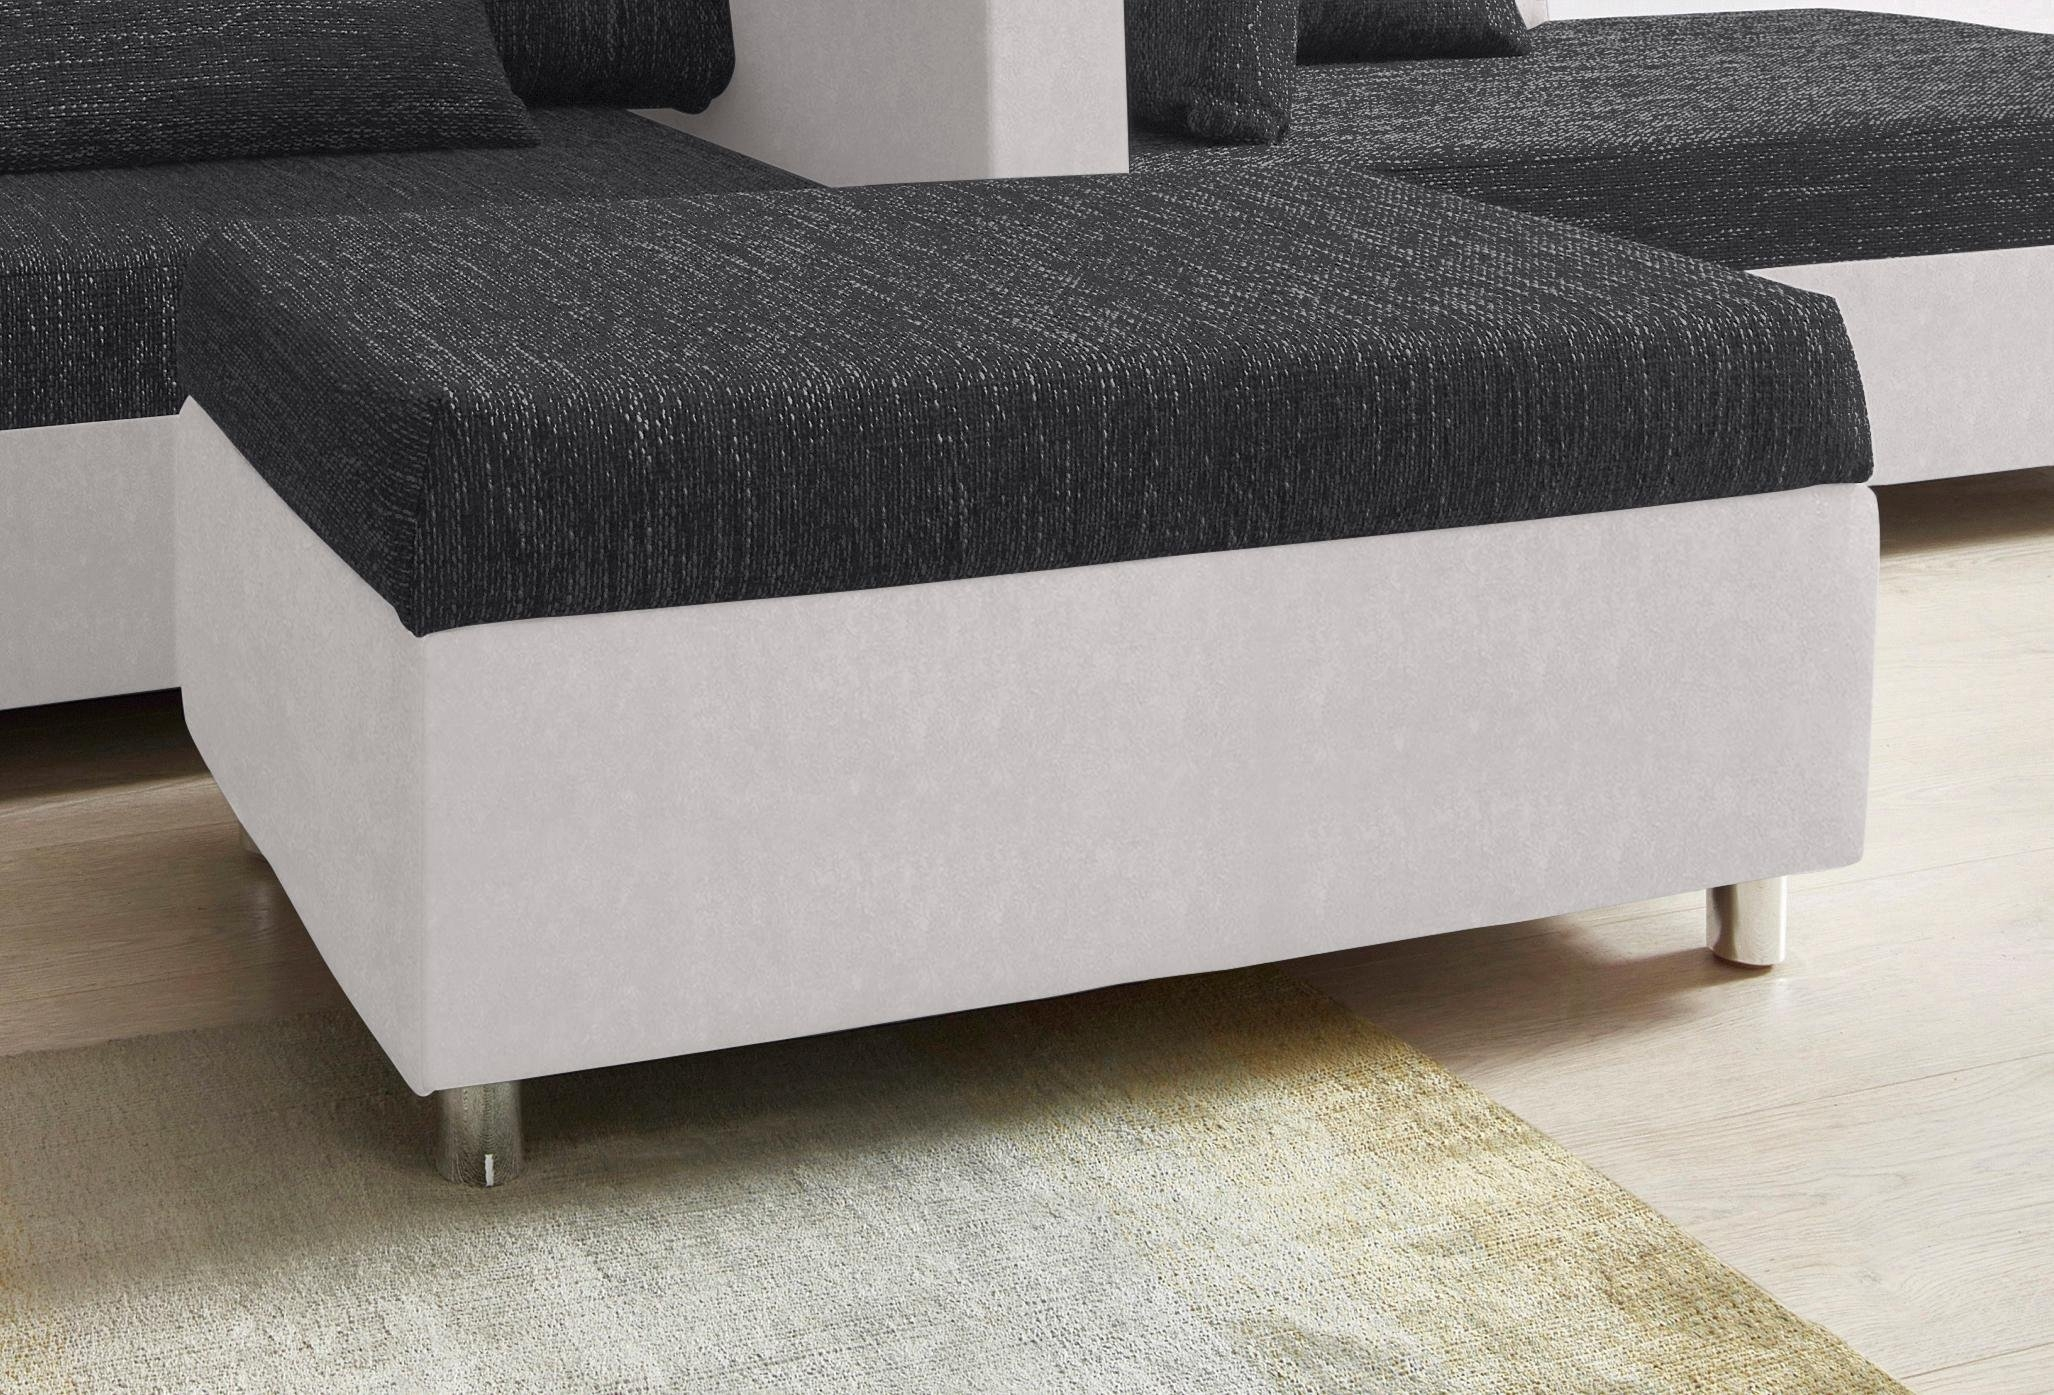 bed hocker richard bub italia bett with bed hocker affordable sitzsack with bed hocker. Black Bedroom Furniture Sets. Home Design Ideas